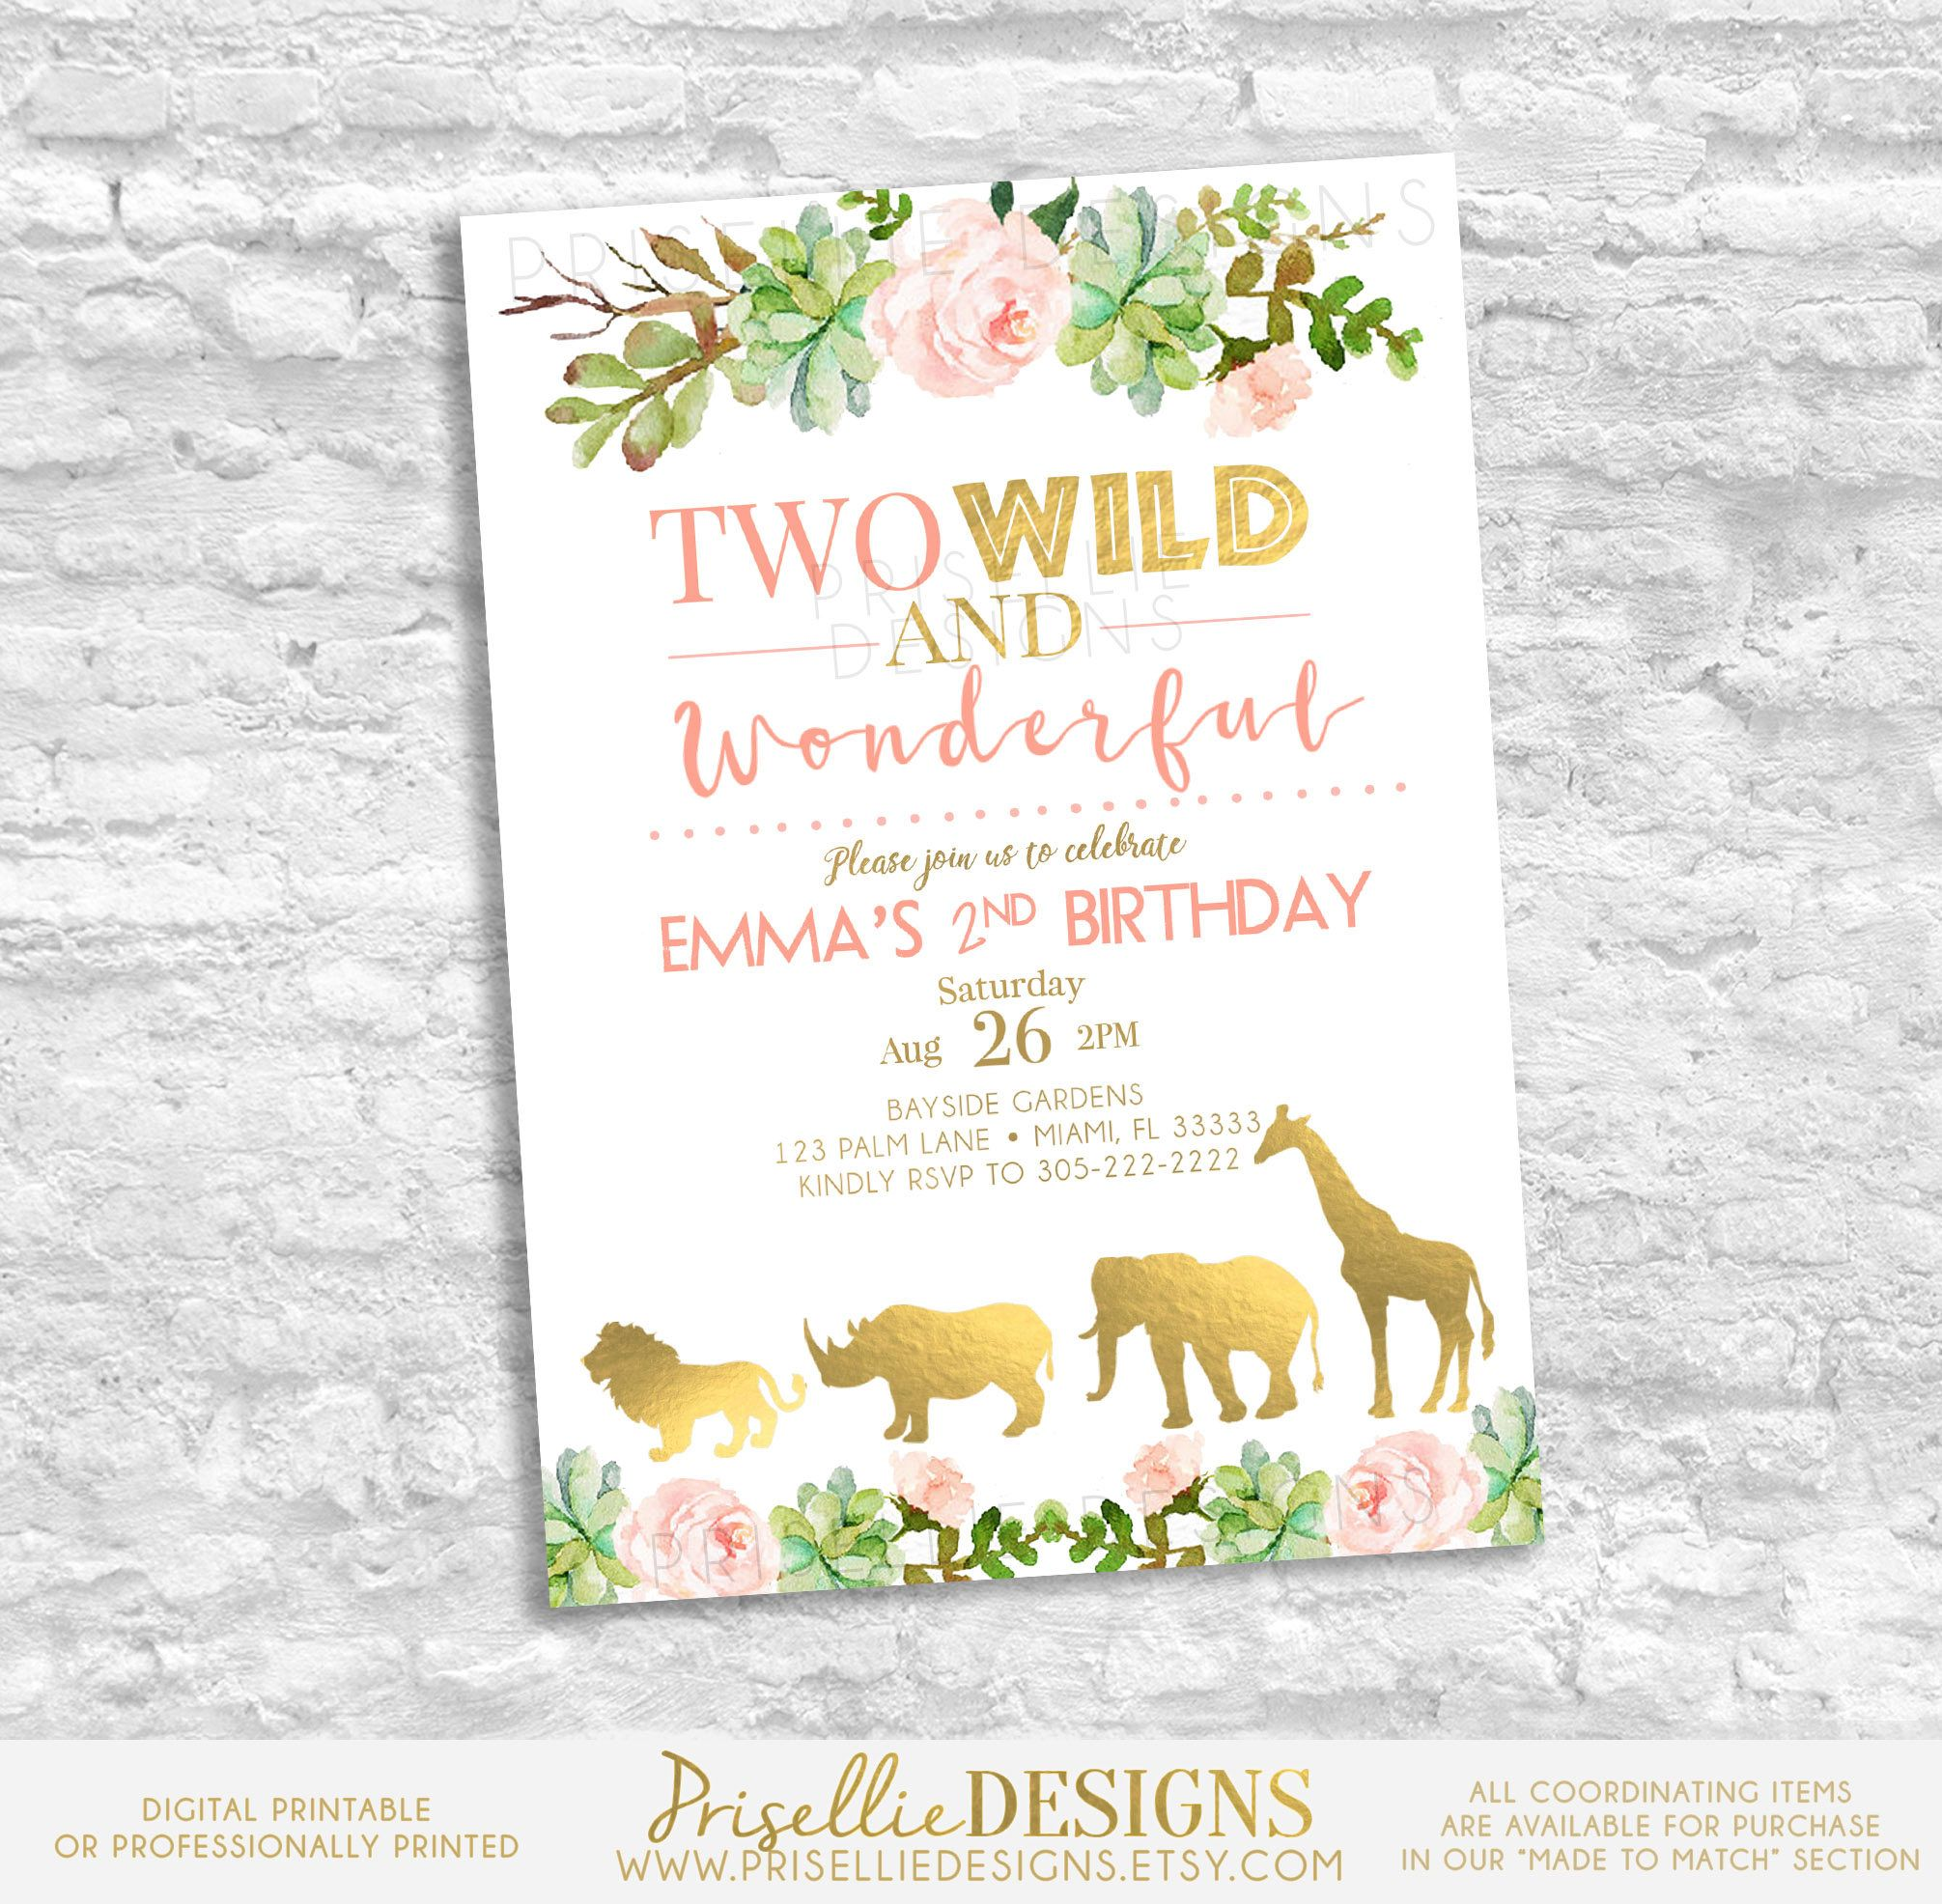 Second Birthday Invitation Two Wild And Wonderful Birthday